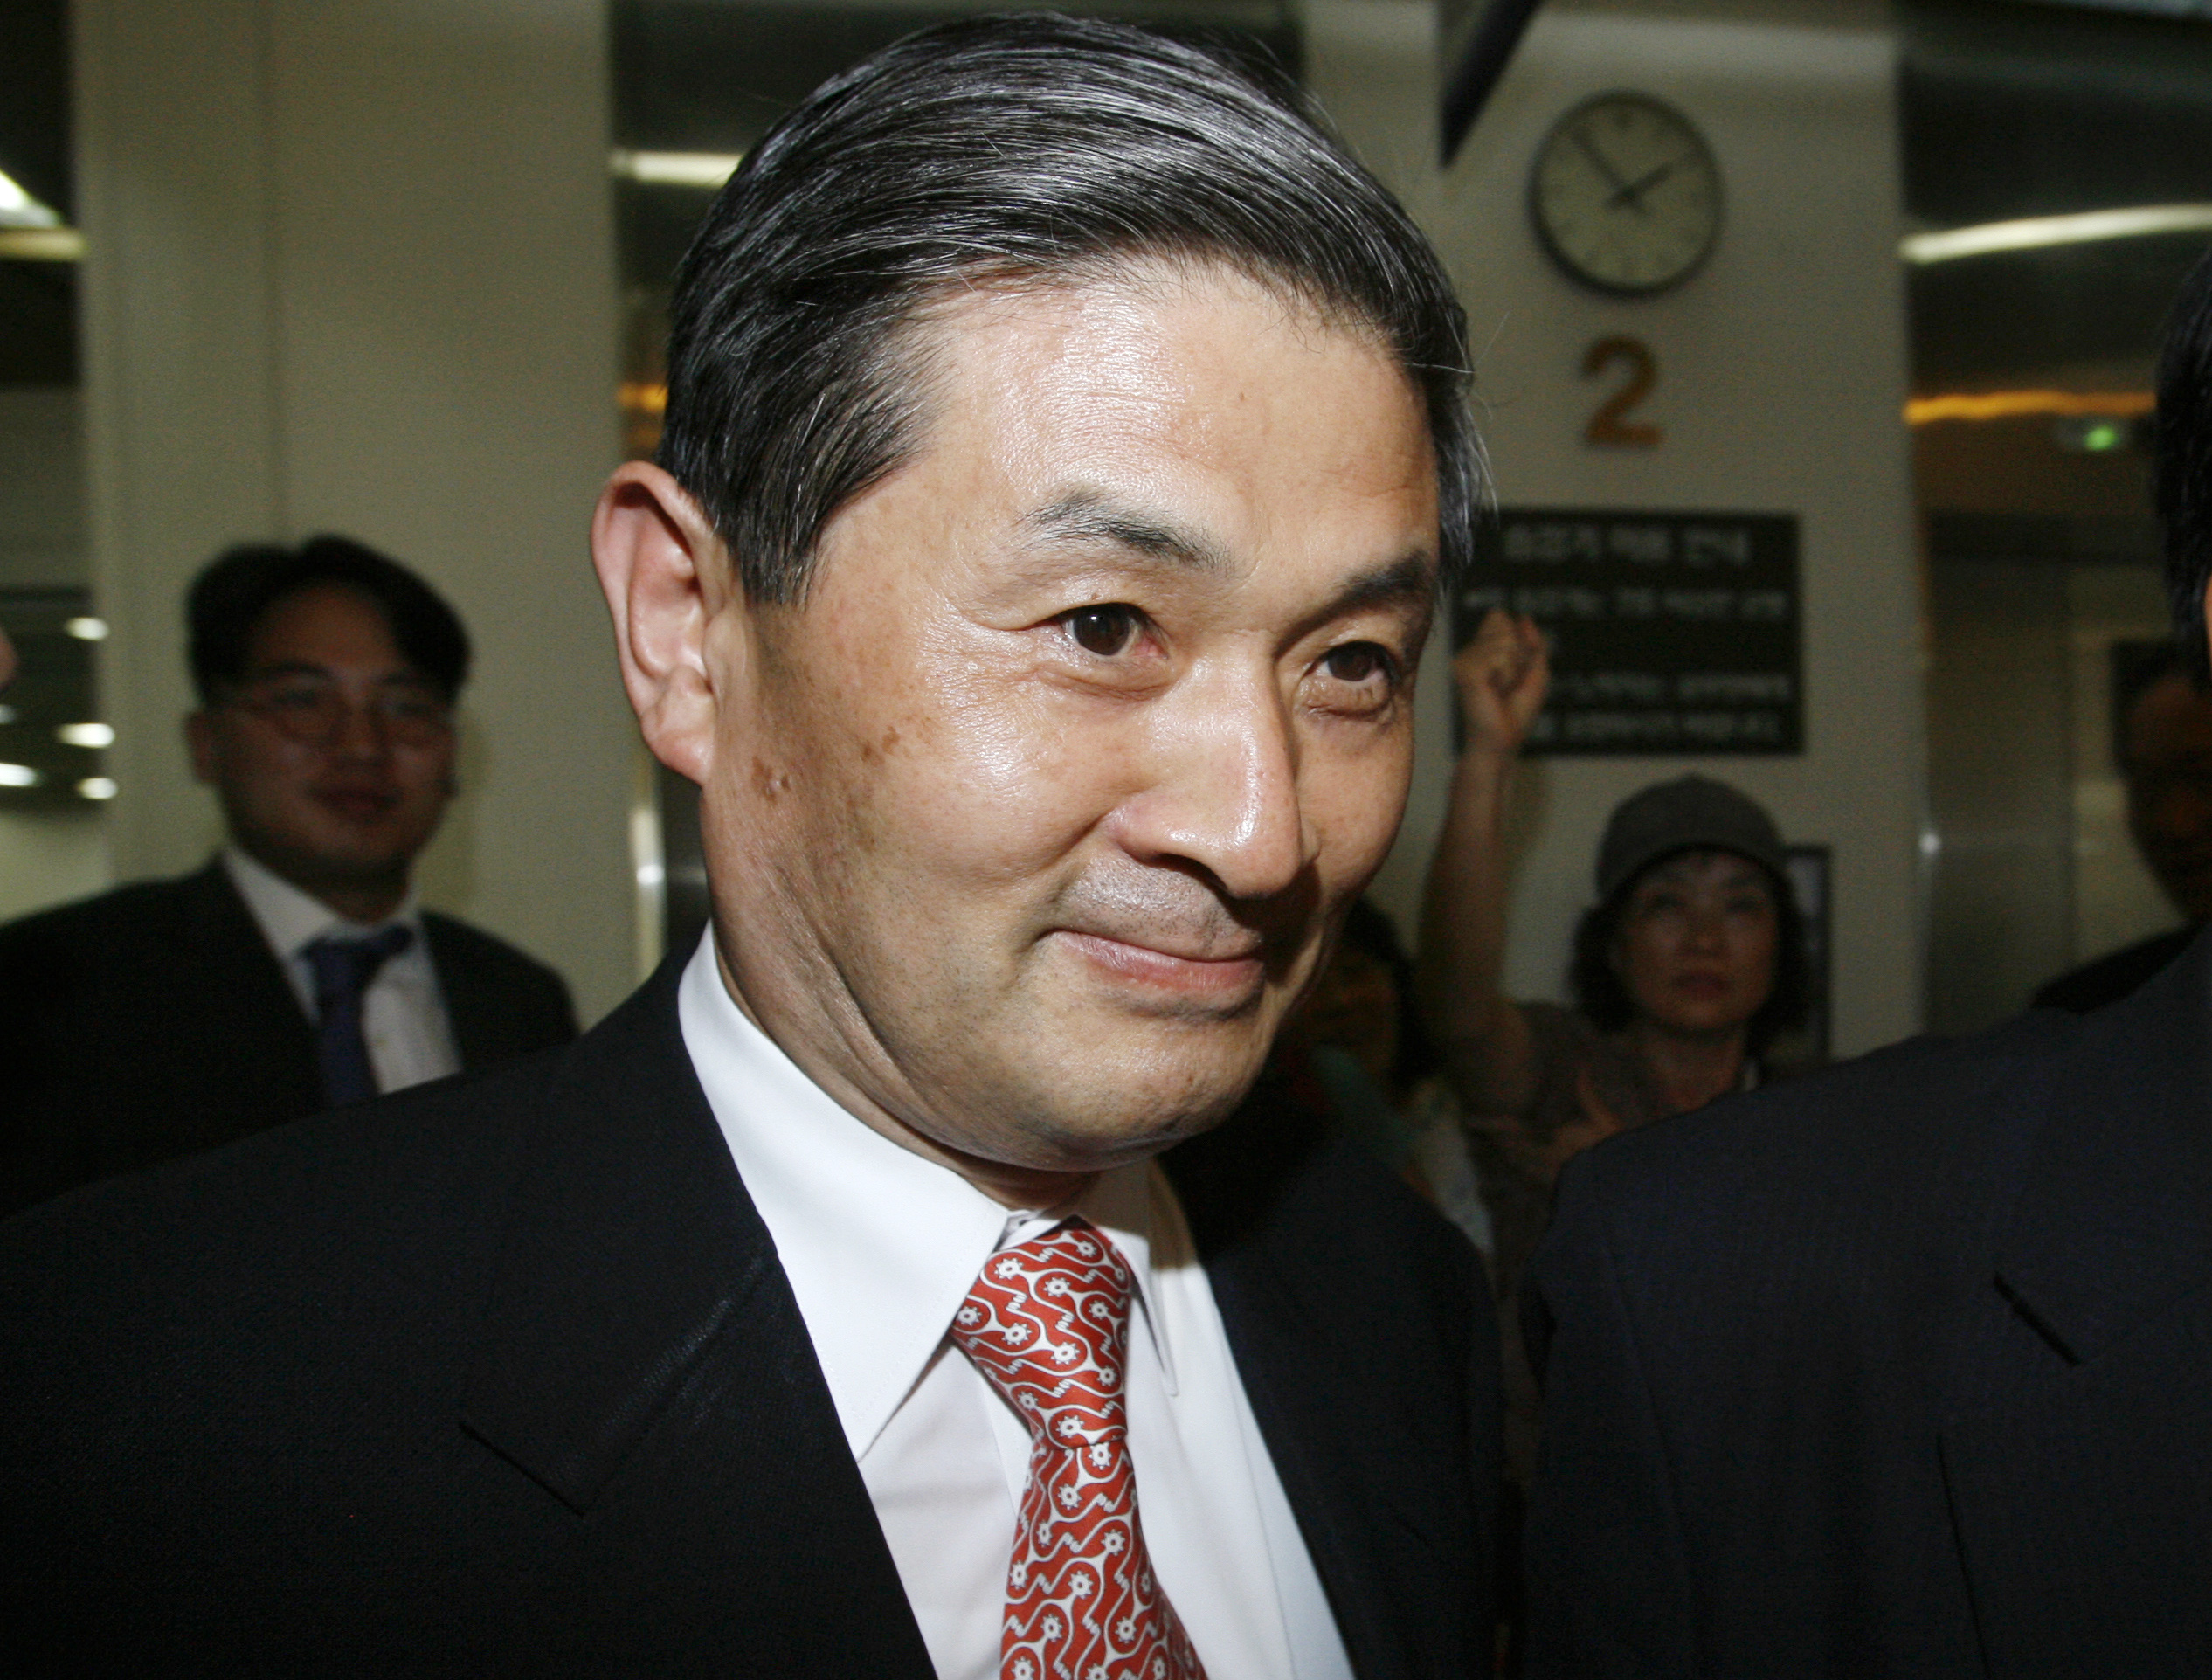 Hwang Woo-suk, disgraced former professor and researcher of Seoul National University.